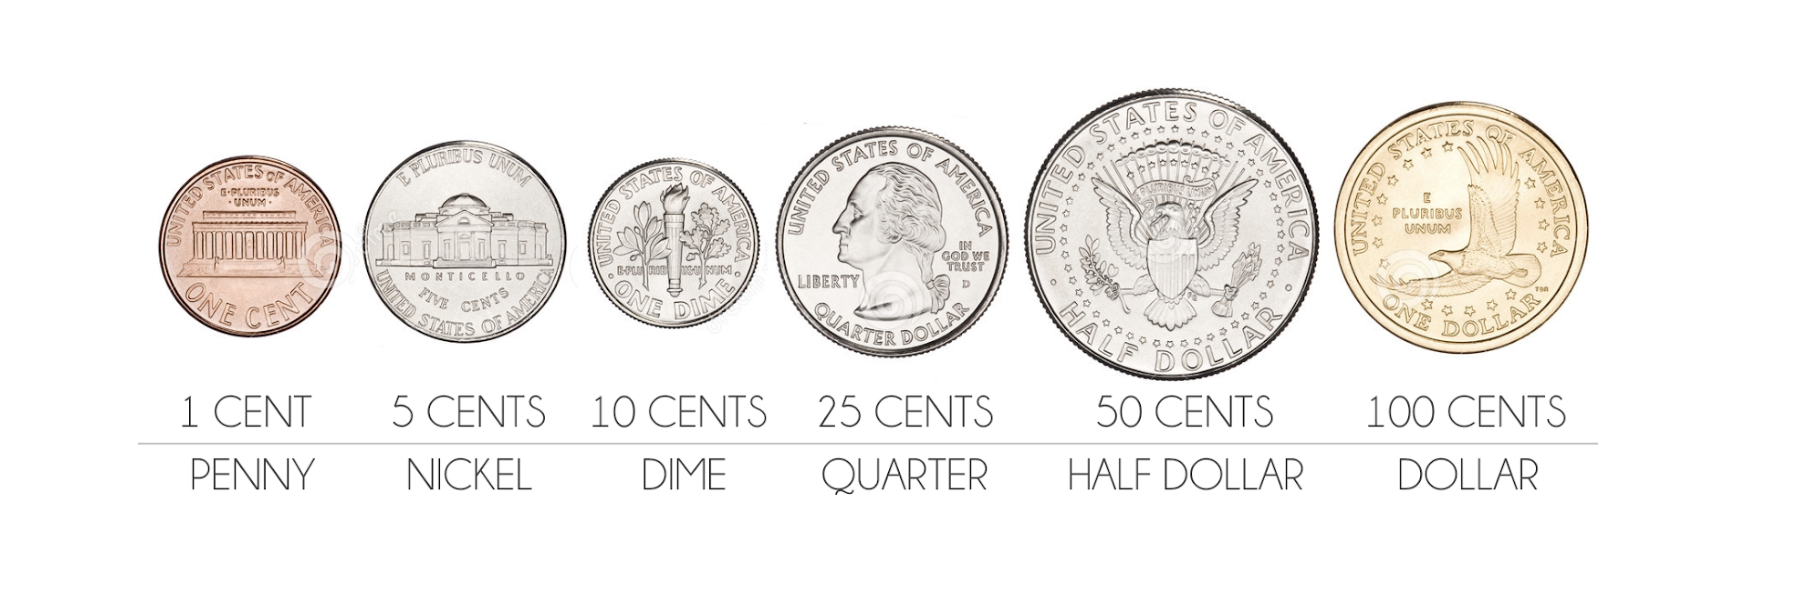 Coin Names U.S. Currency